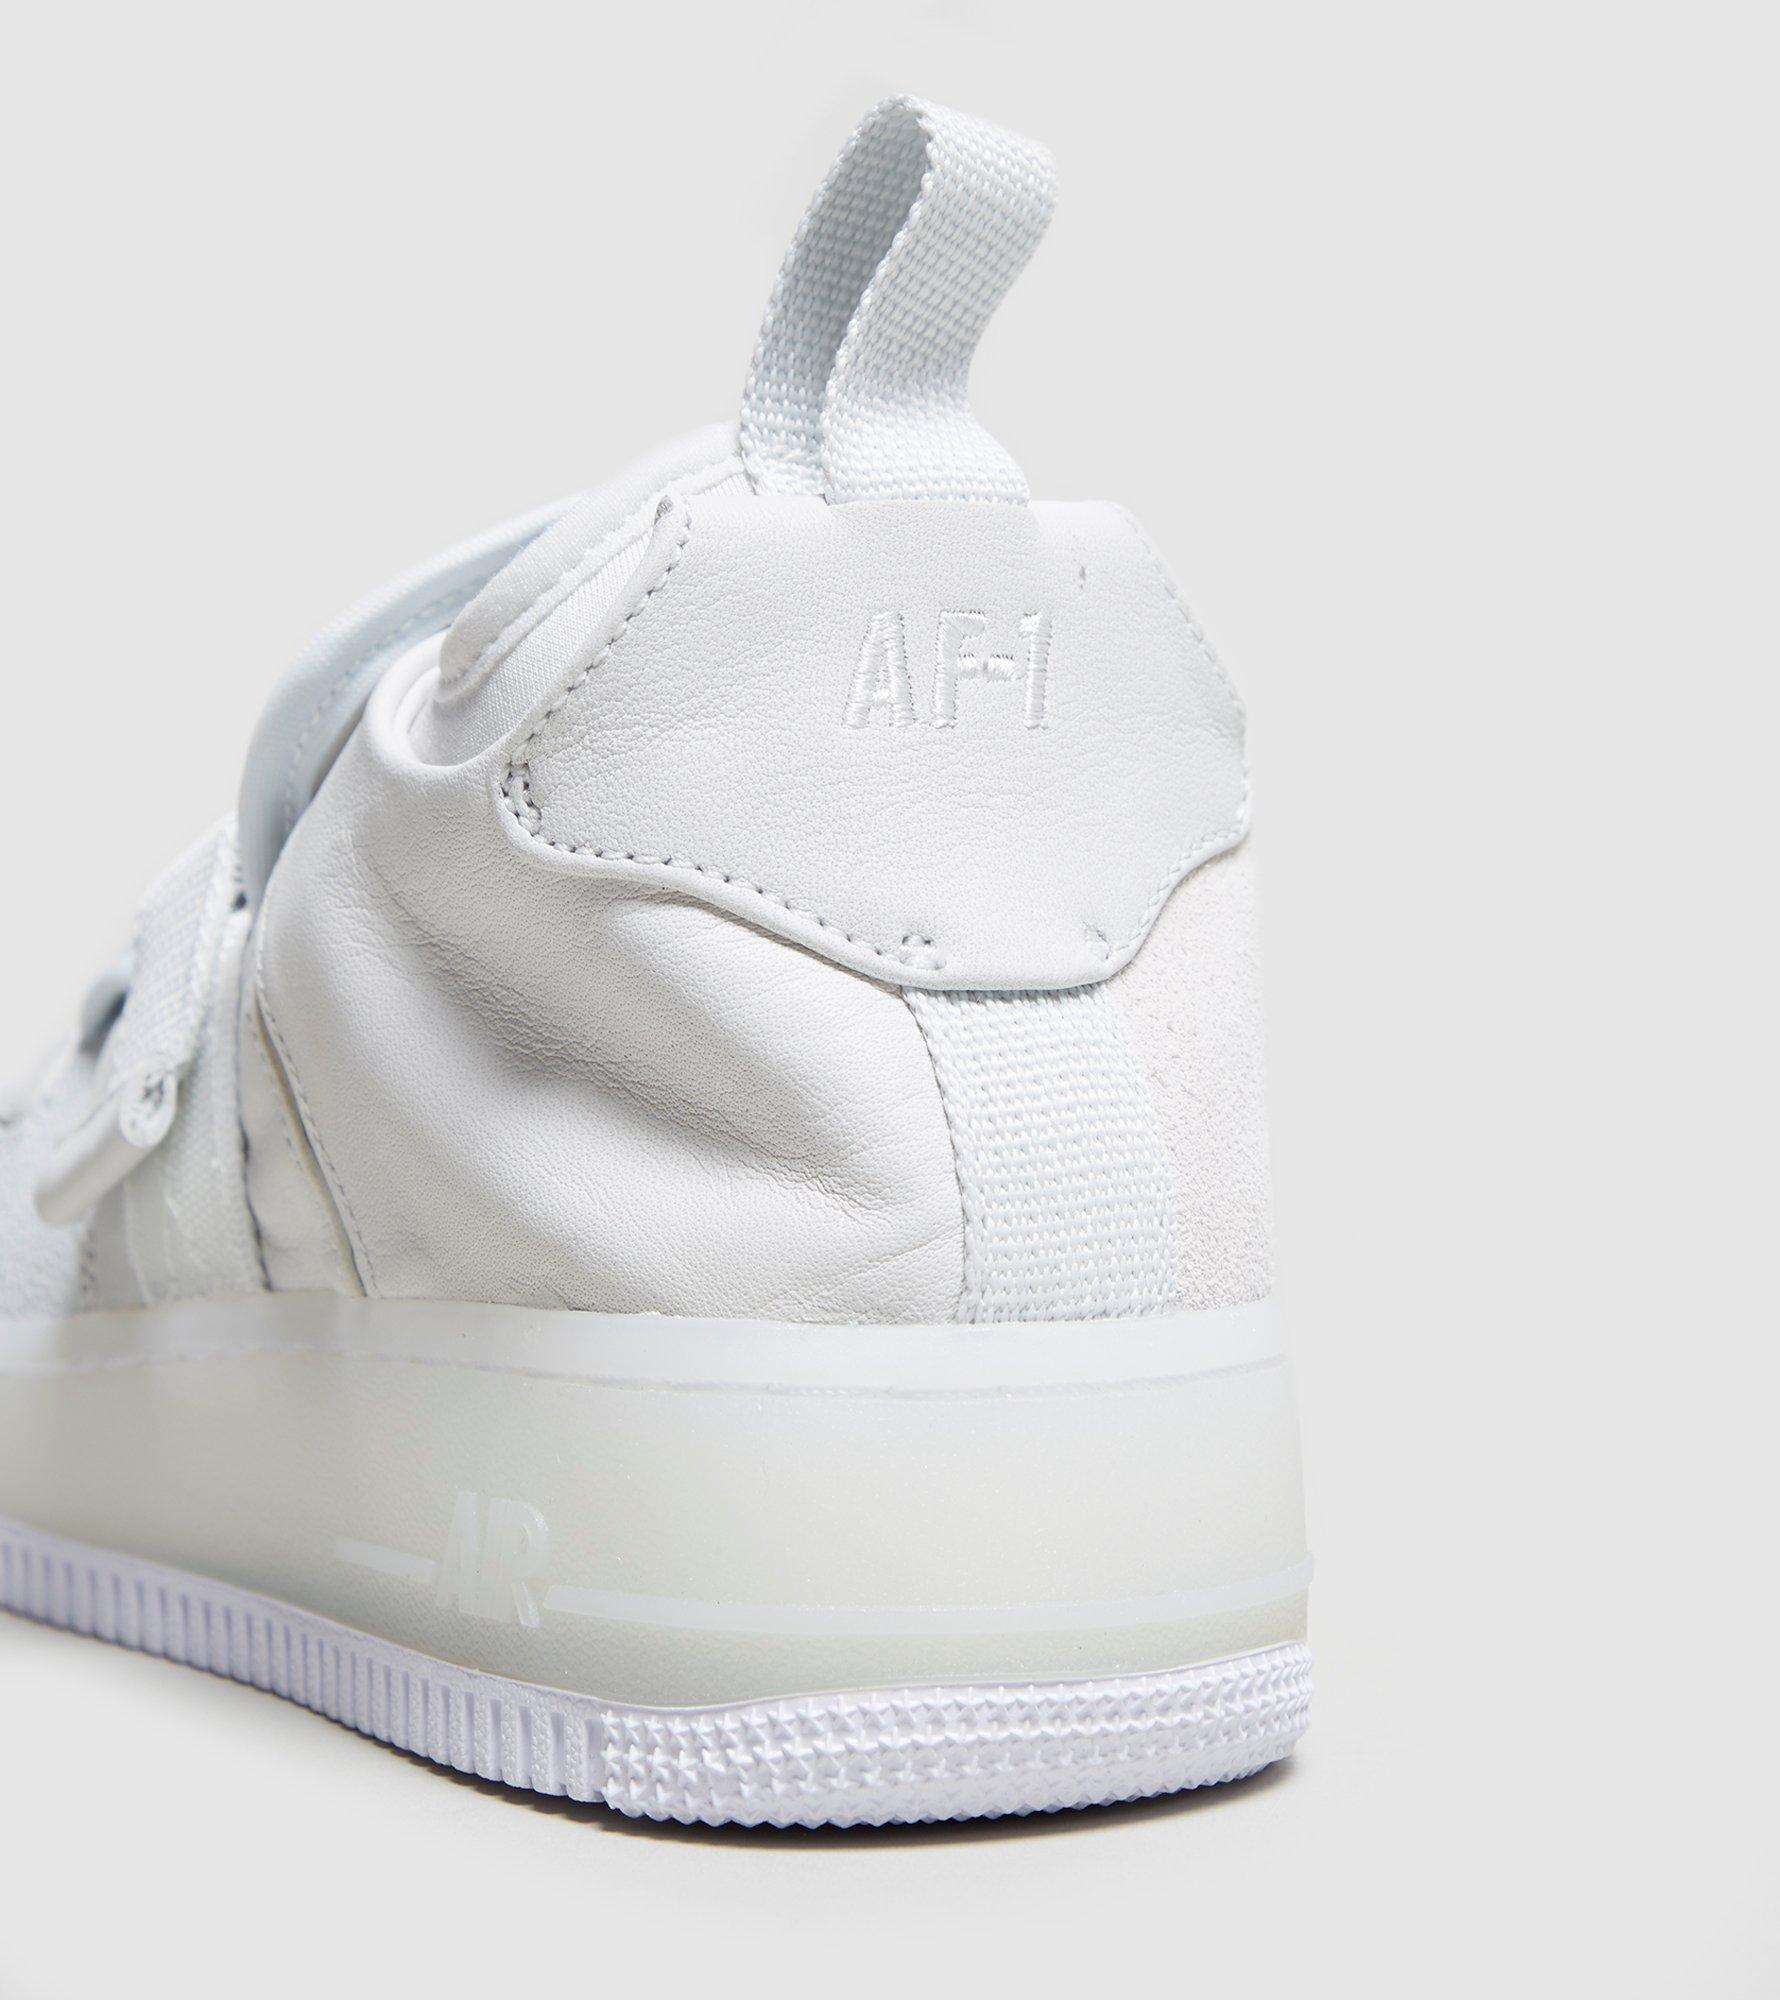 3a735015abce1 Gallery. Previously sold at: Size · Women's Nike Air Force Sneakers